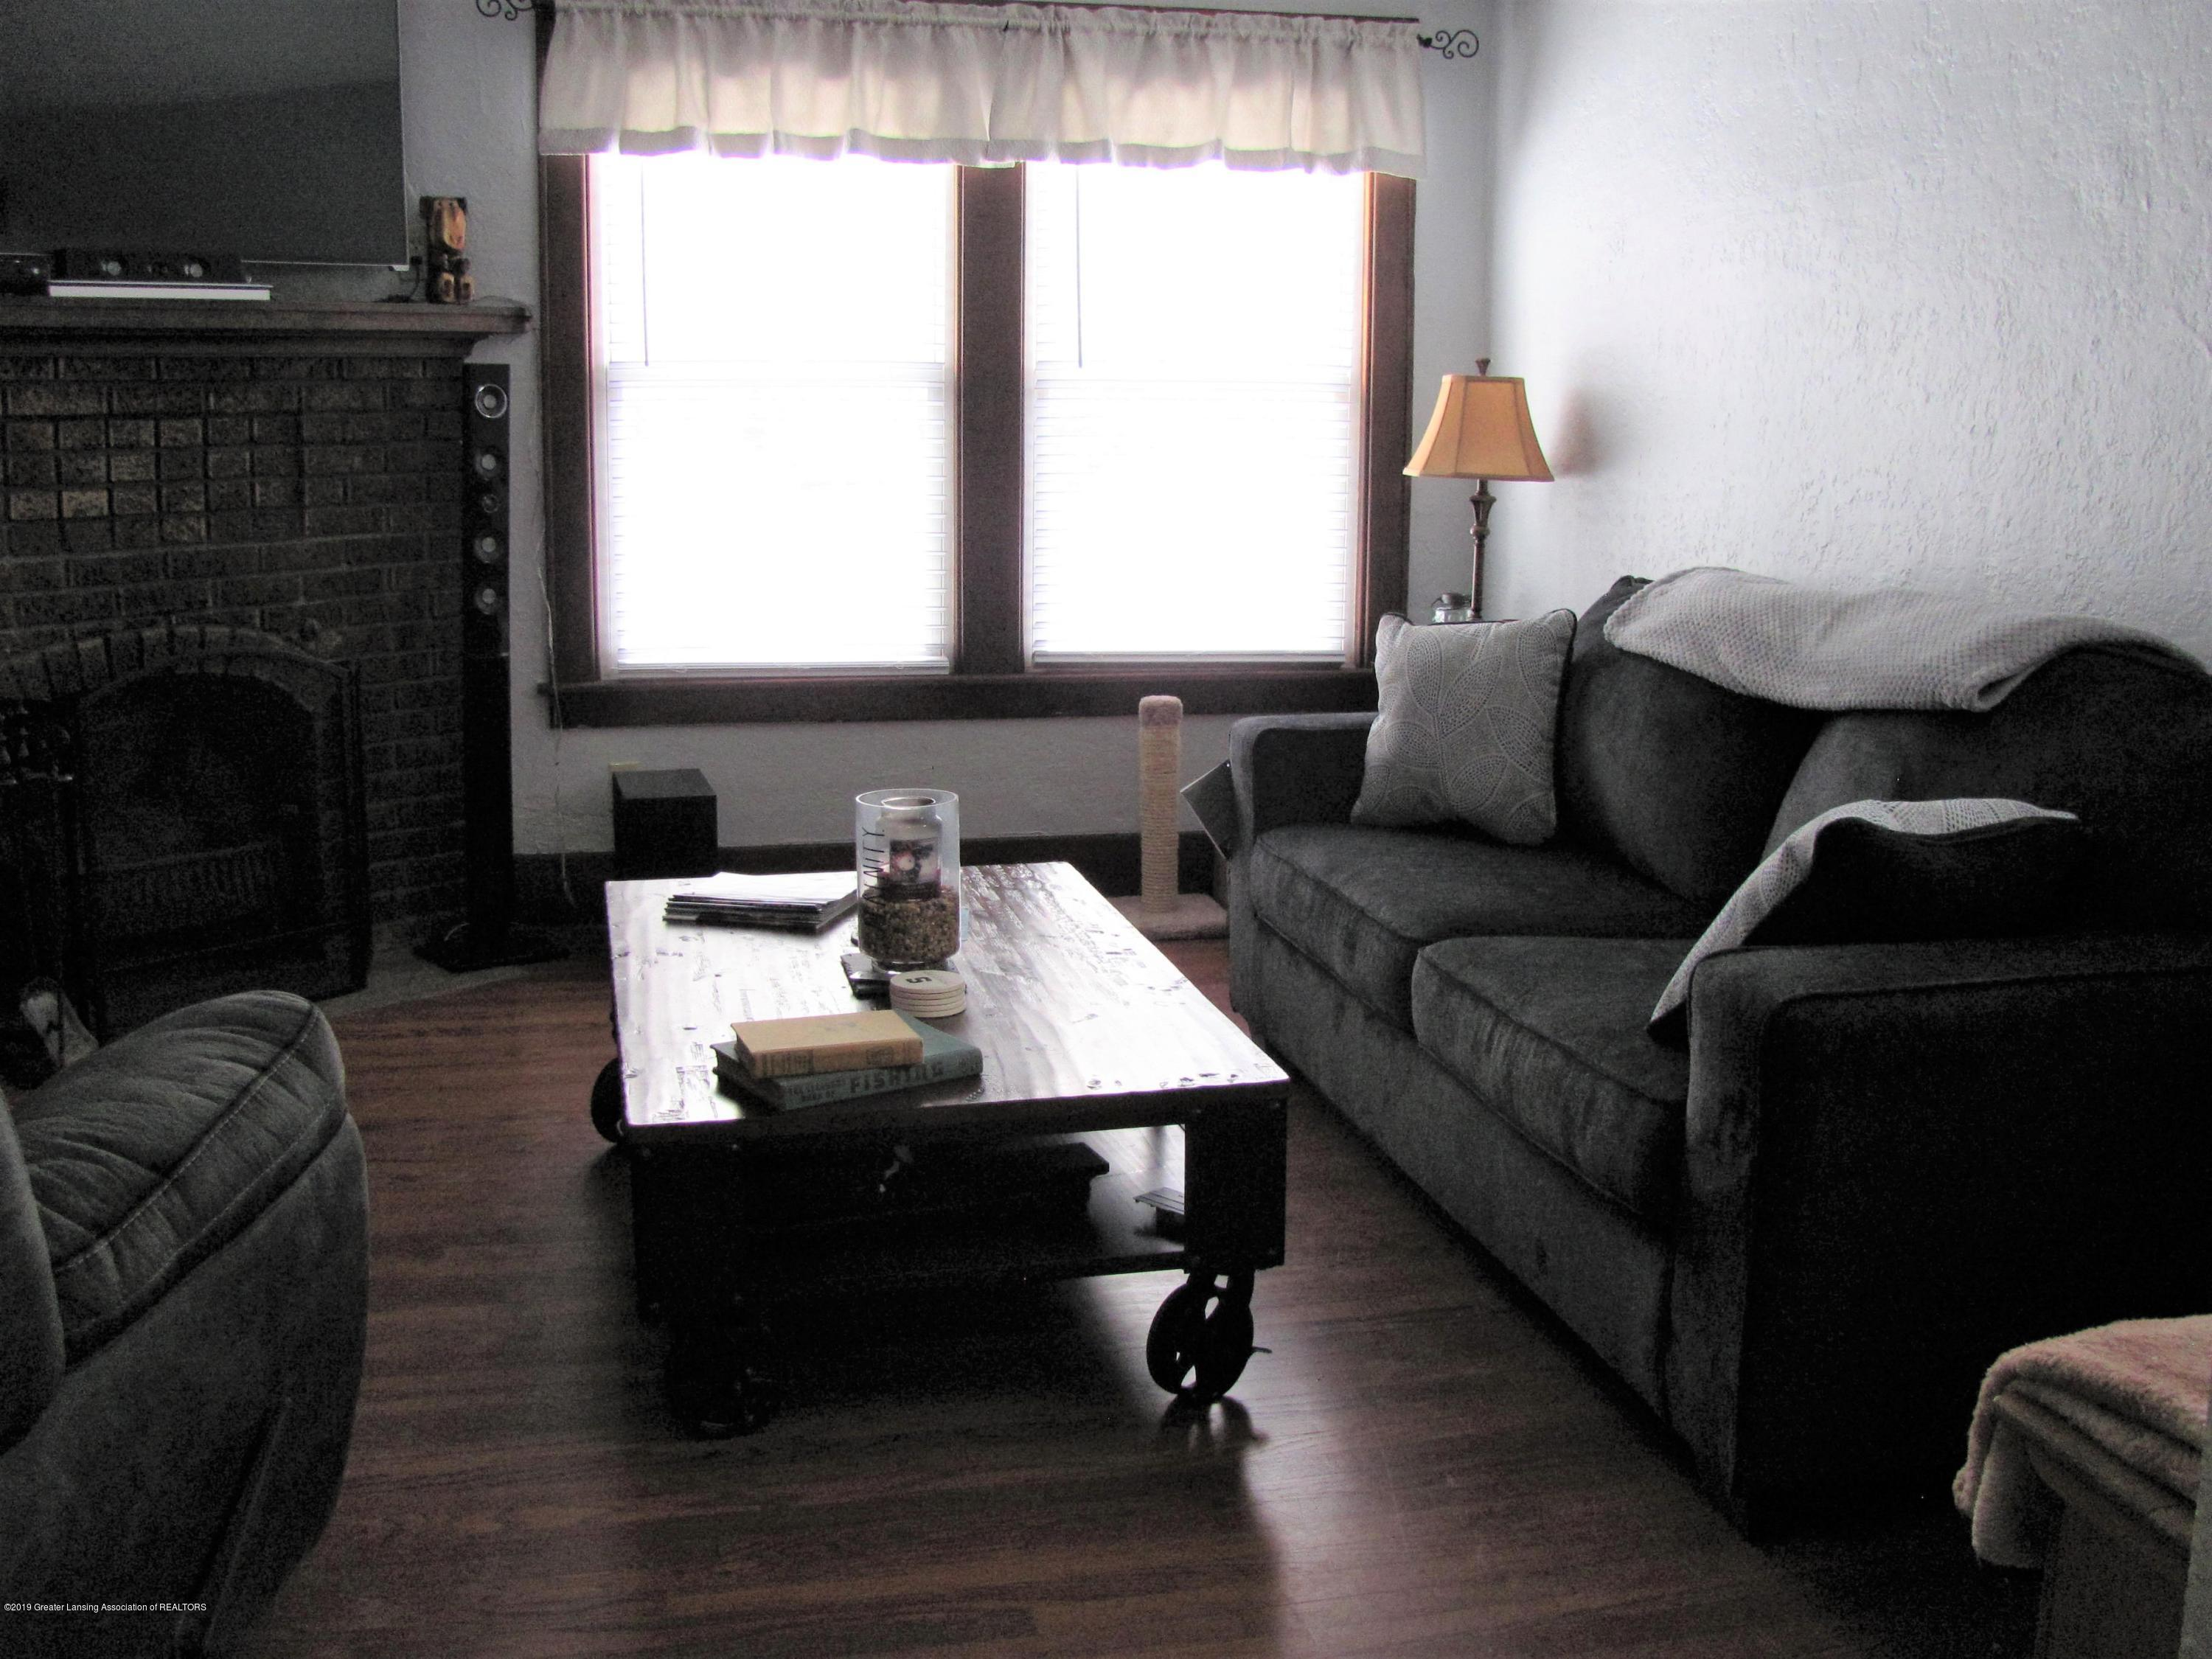 629 N Fairview Ave - Living room - 13